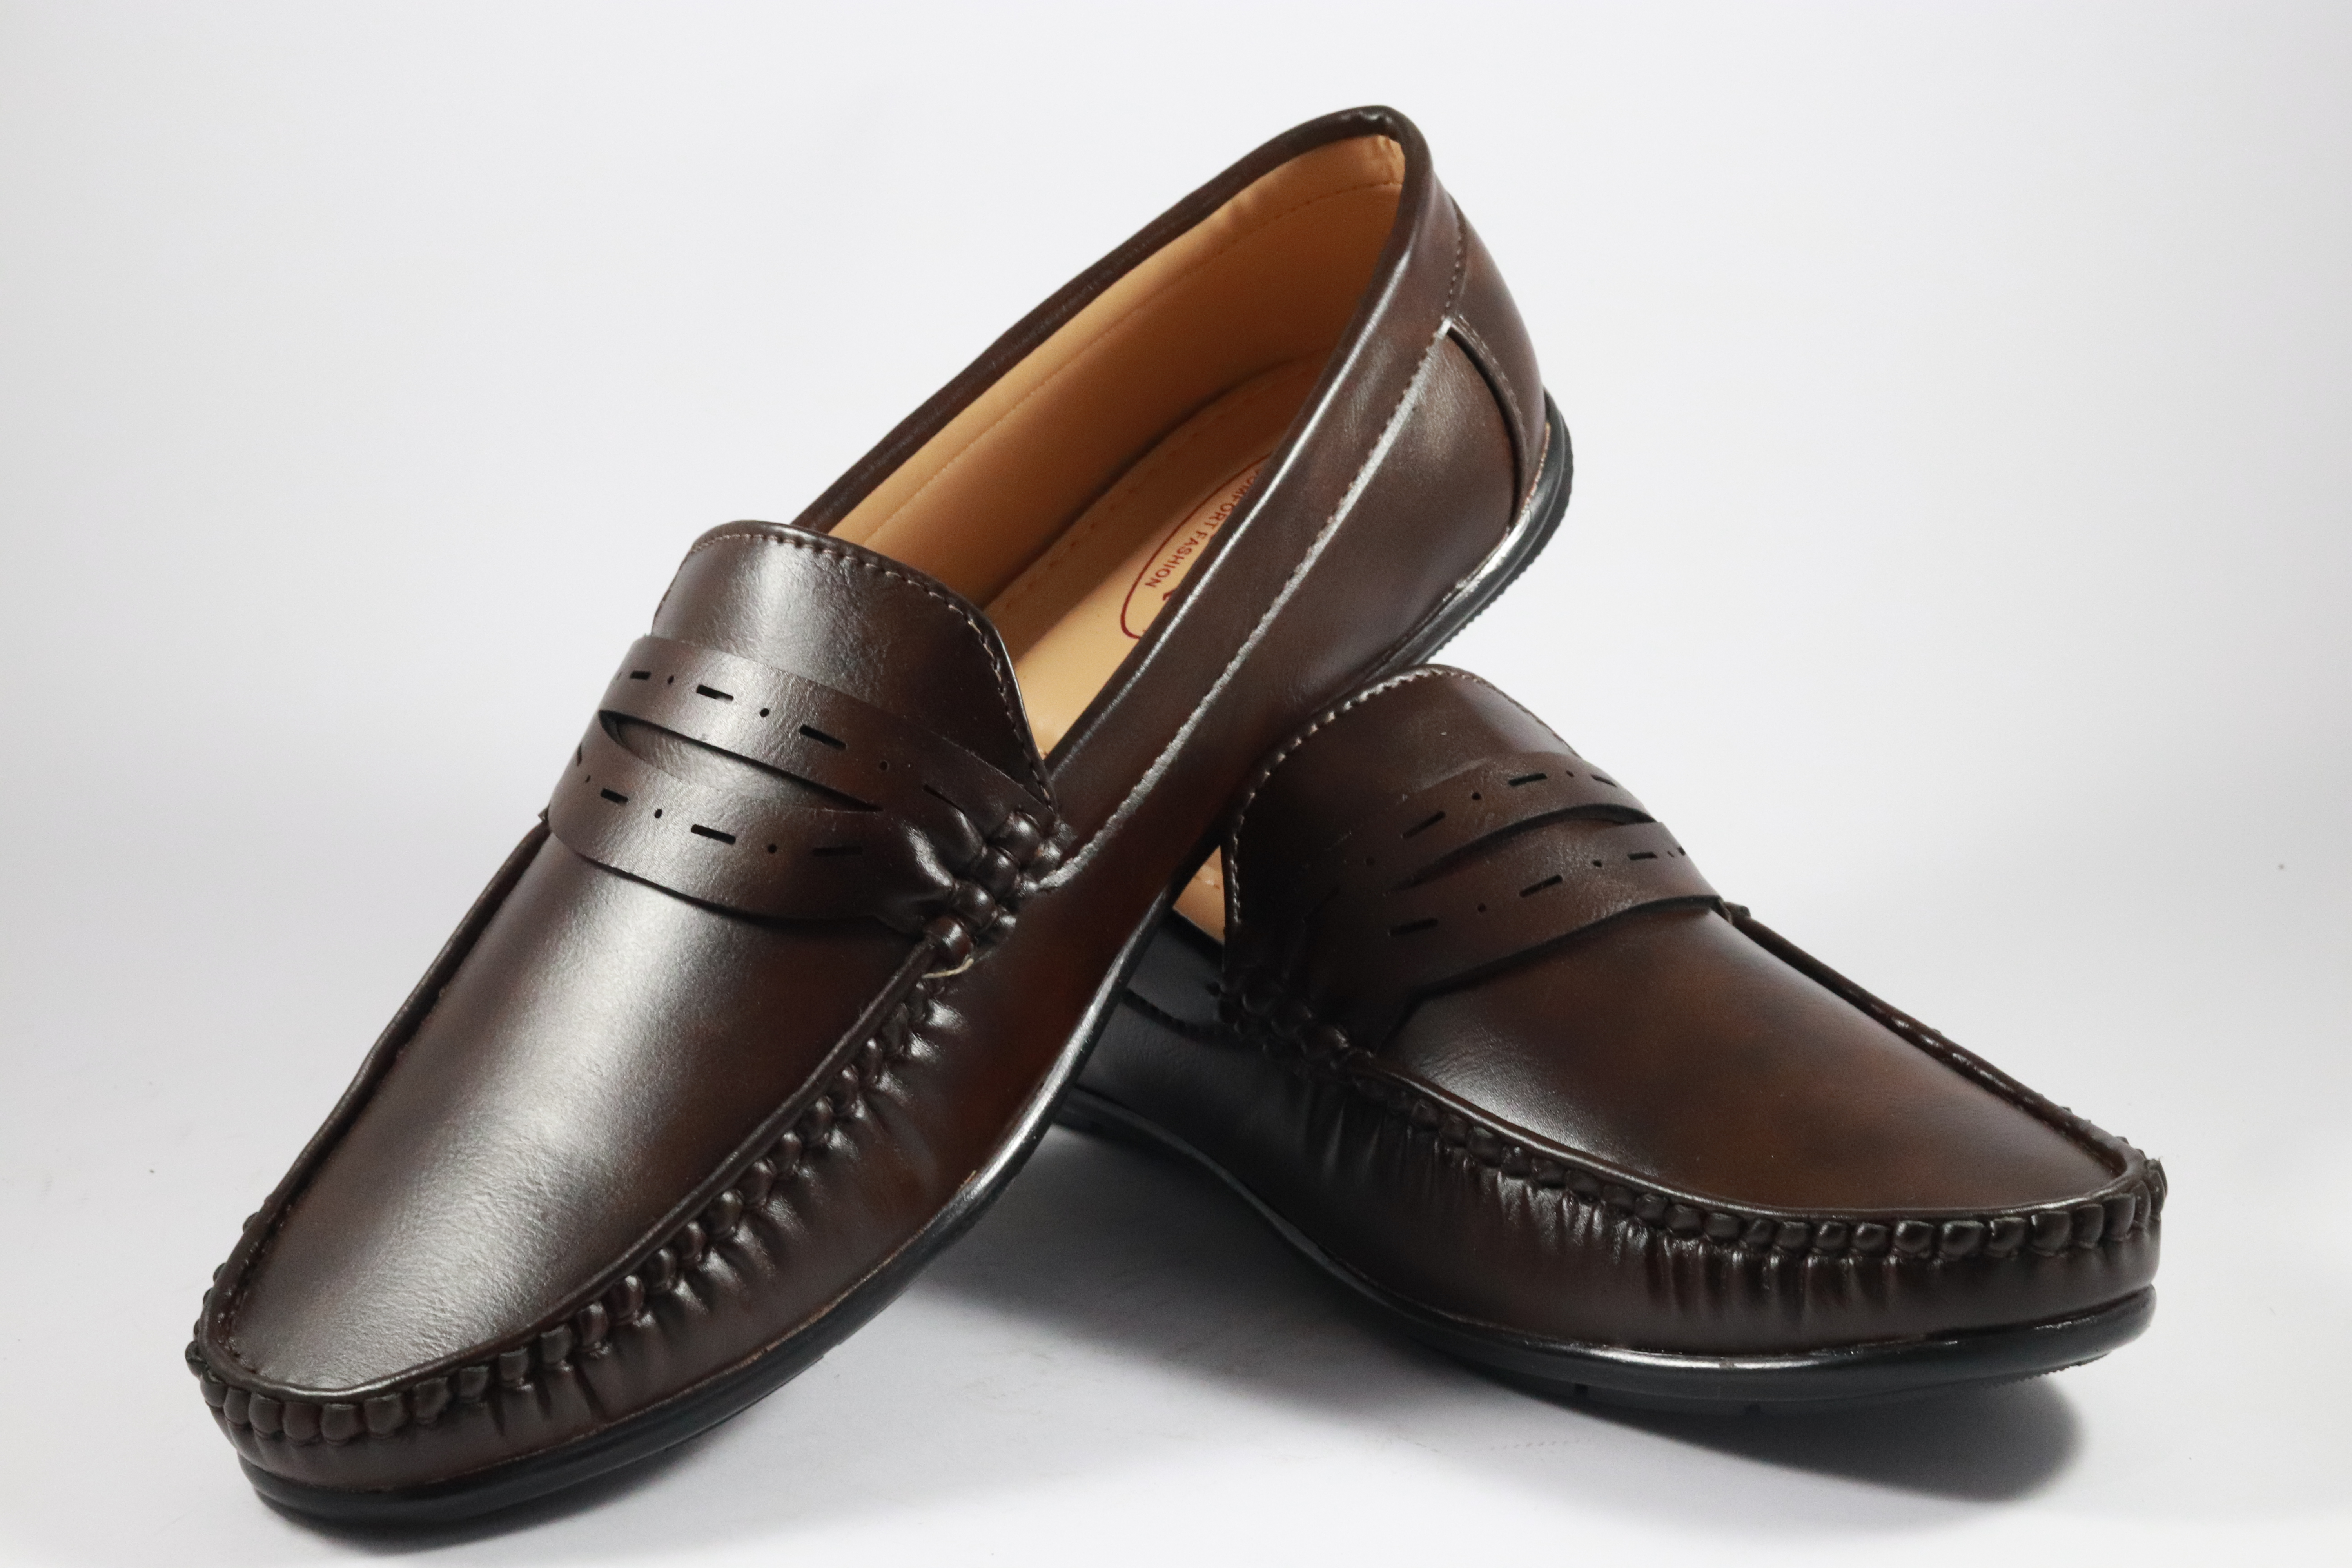 B&B Tiger Loafers For Men's Wear LF-17 BROWN (BROWN, 7-10( Men`s), PAIR'S)